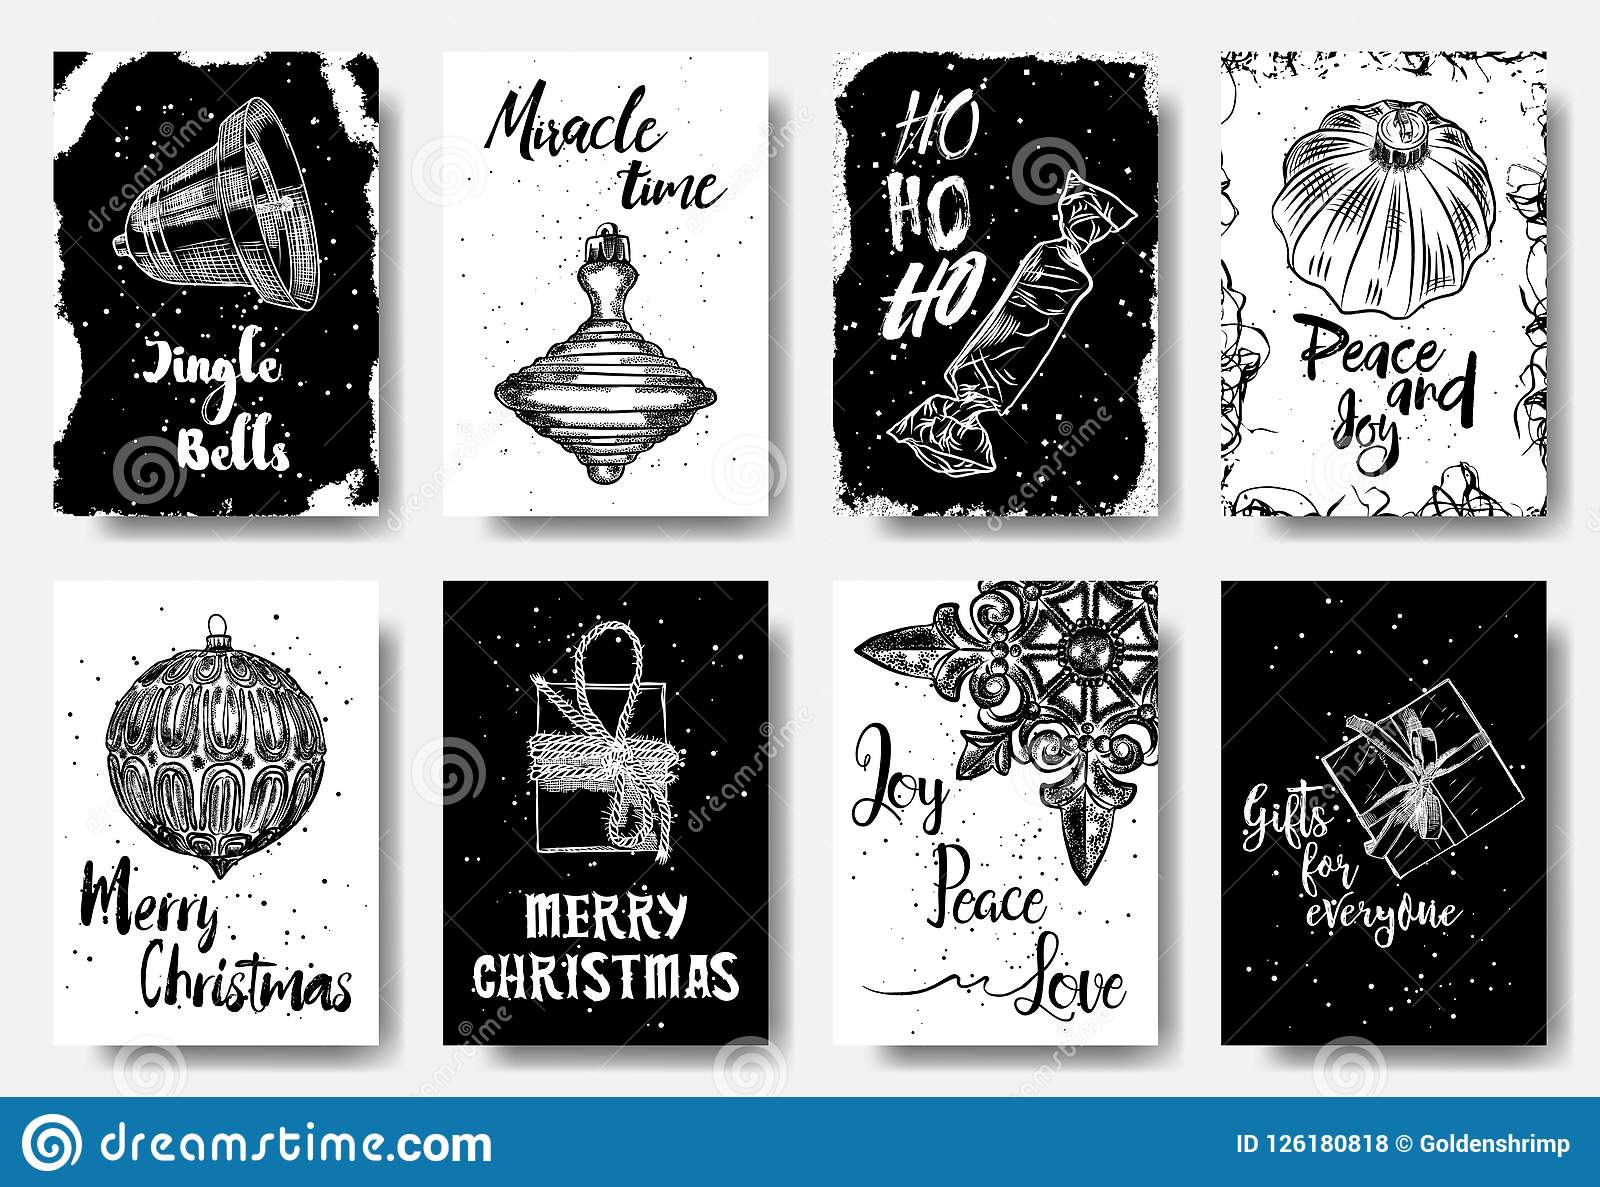 Set of 8 merry christmas and happy new year hand drawn greeting download set of 8 merry christmas and happy new year hand drawn greeting stock vector m4hsunfo